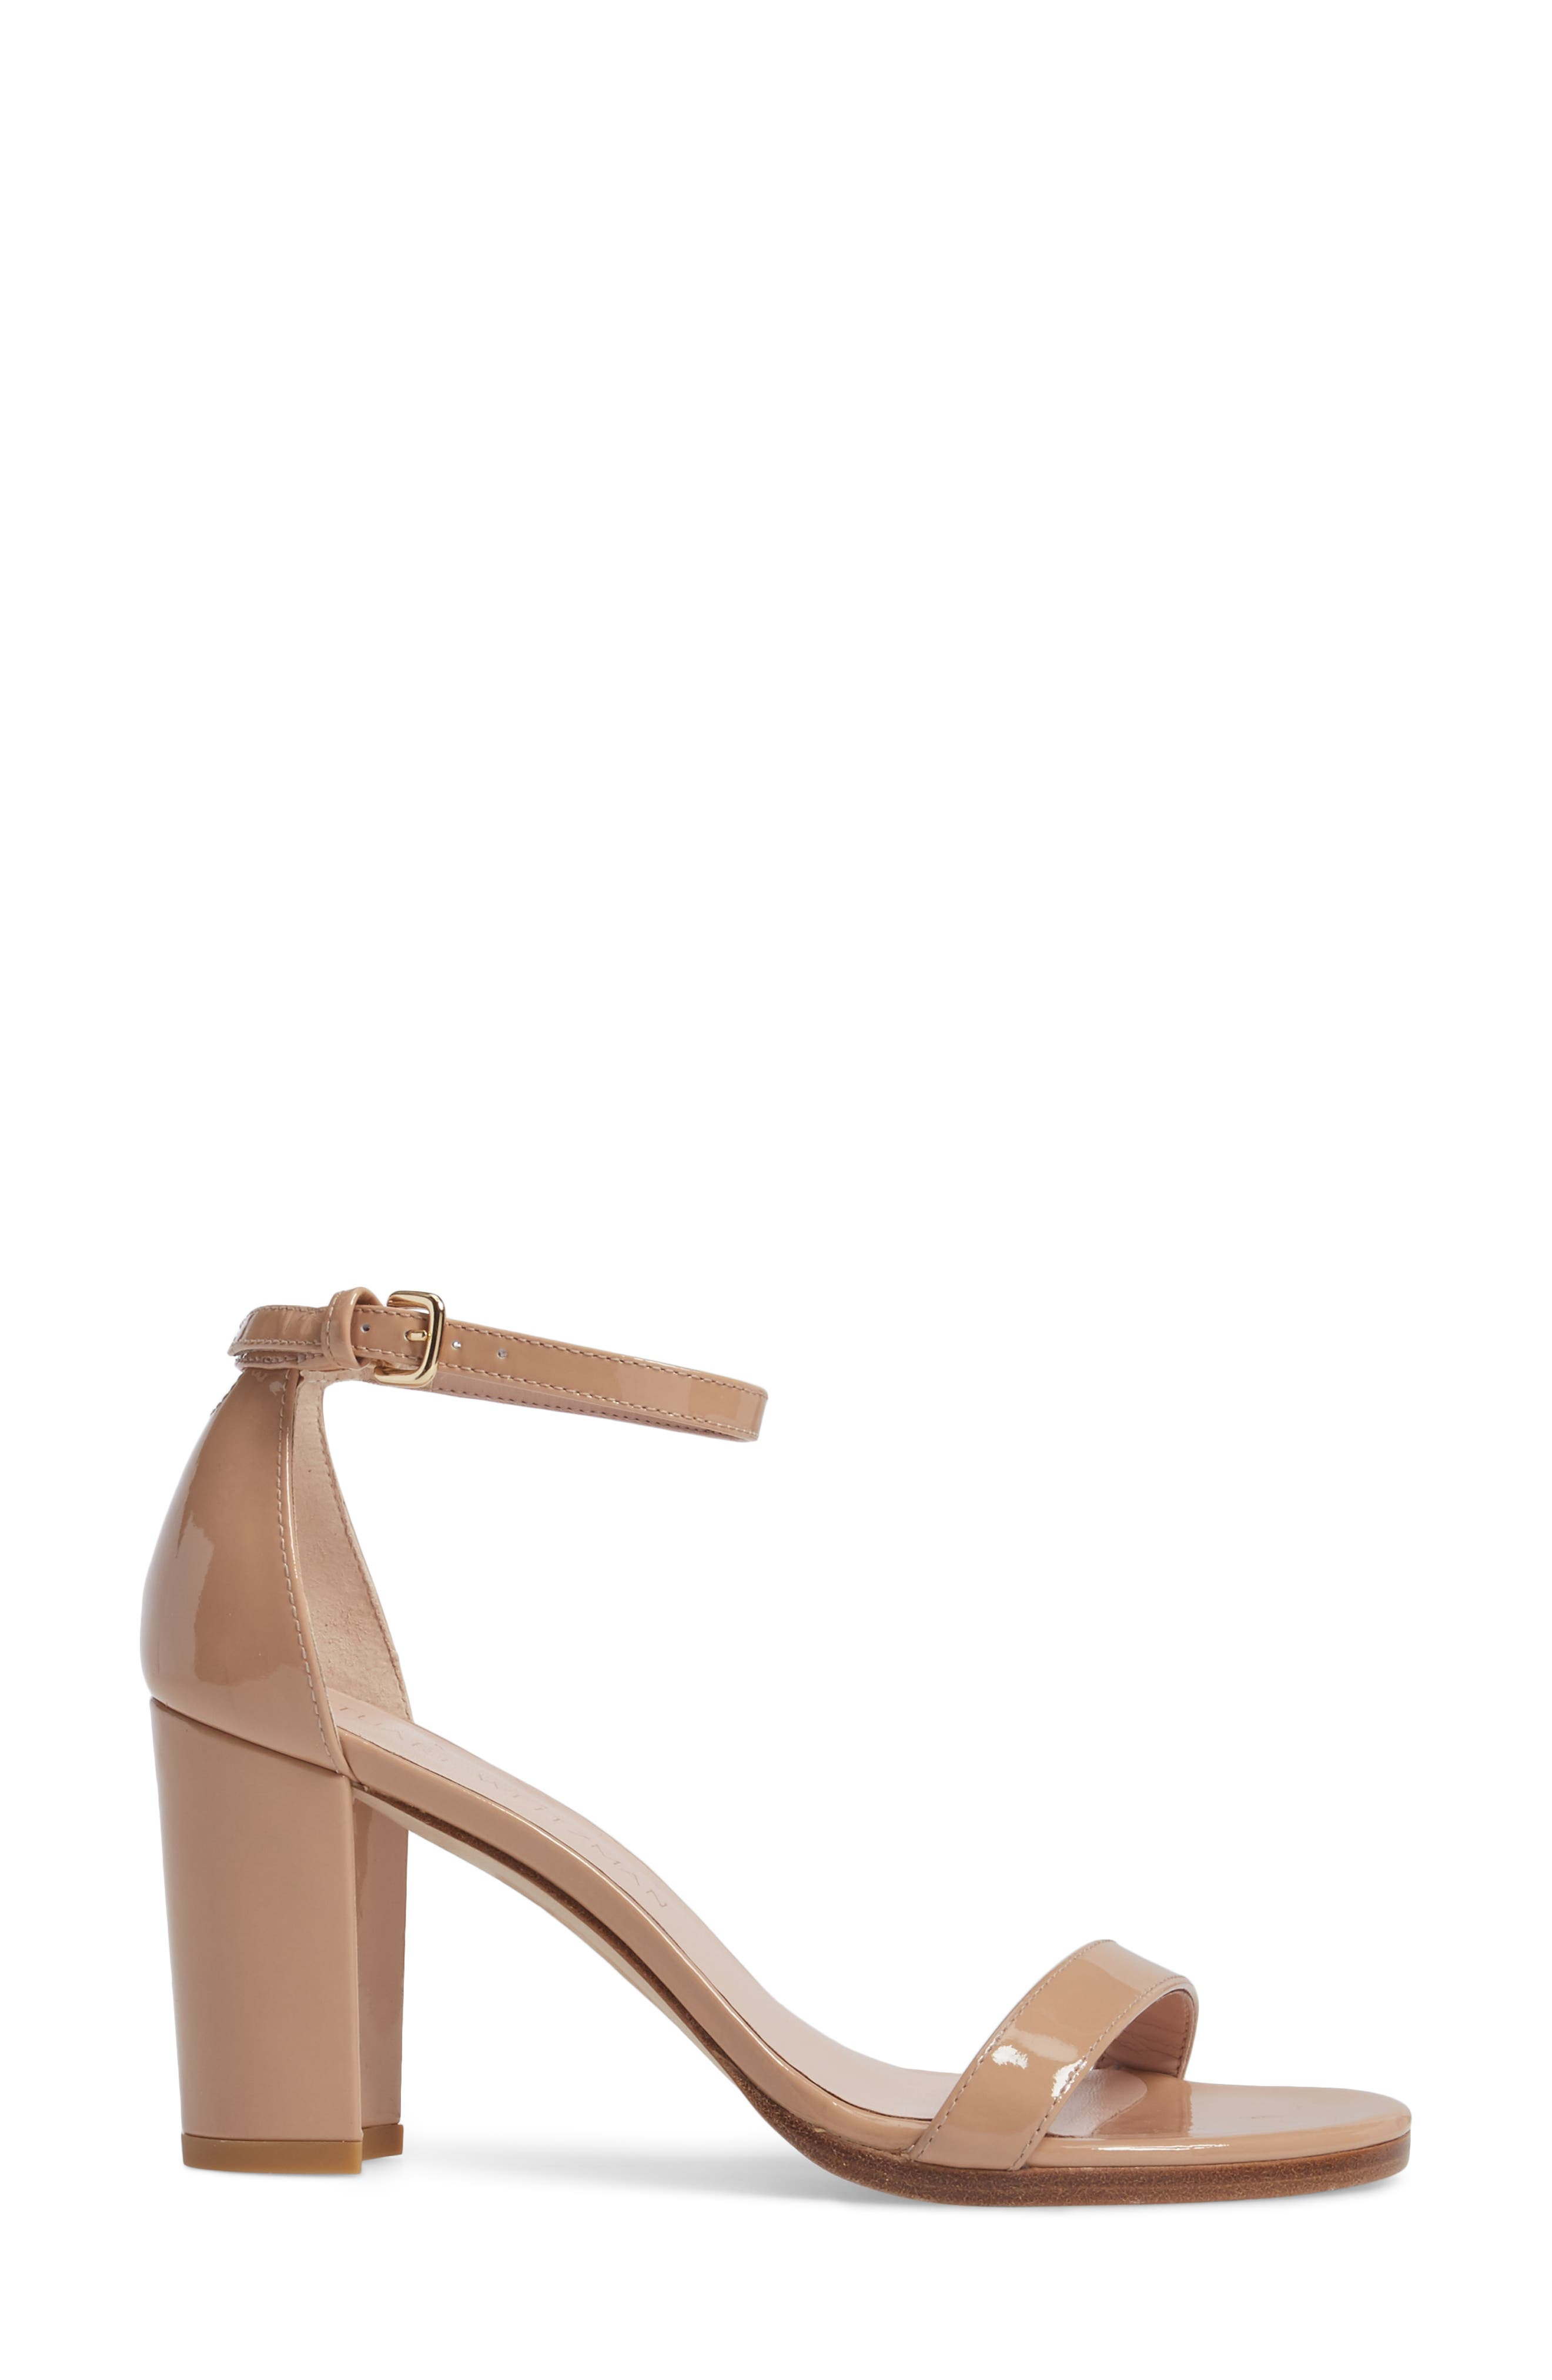 NearlyNude Ankle Strap Sandal,                             Alternate thumbnail 3, color,                             ADOBE ANILINE